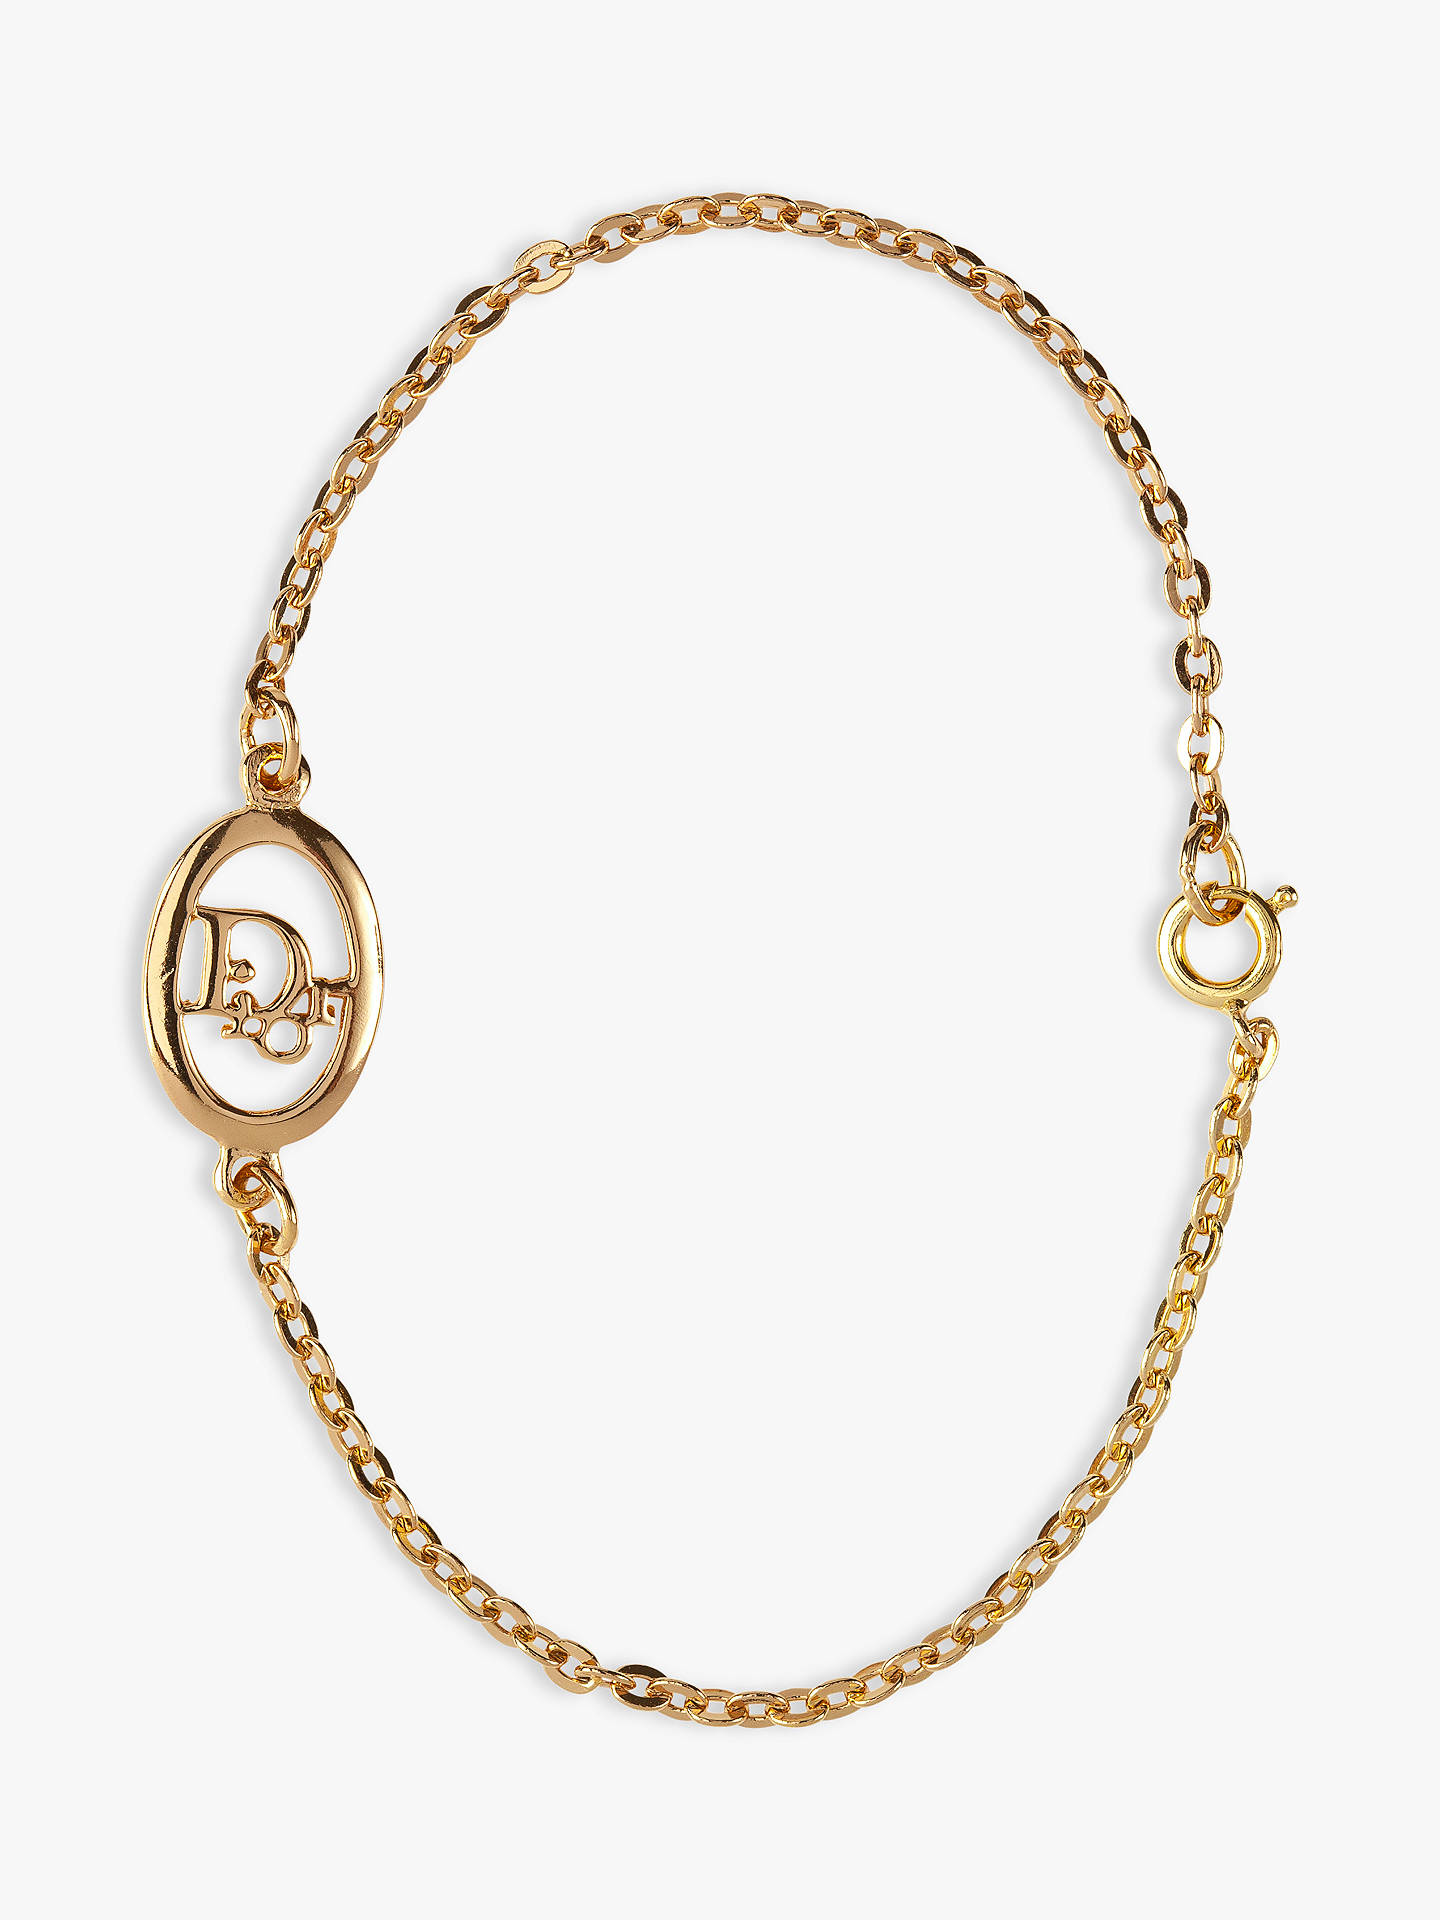 acb3418e856f64 Buy Susan Caplan Vintage Christian Dior 22ct Gold Plated Oval Logo Chain  Bracelet, Gold Online ...